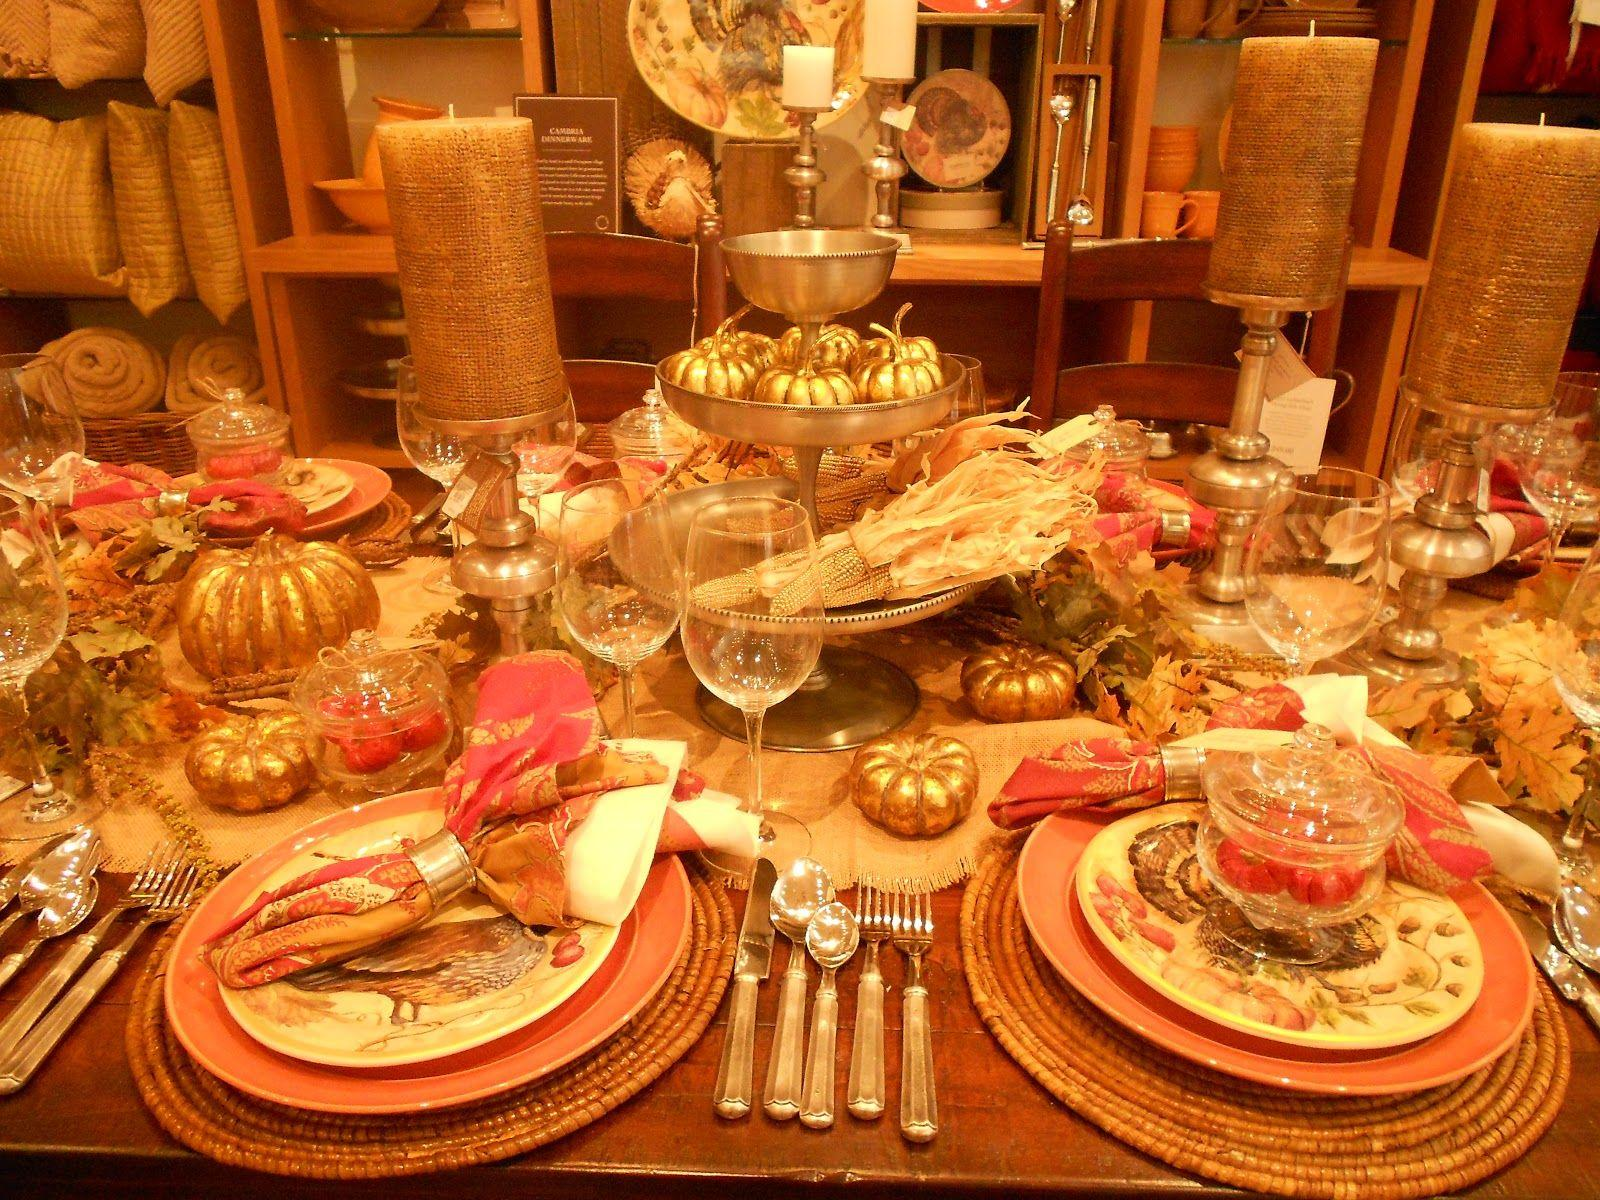 How To Decorate A Table For Thanksgiving Thanksgiving Table ...